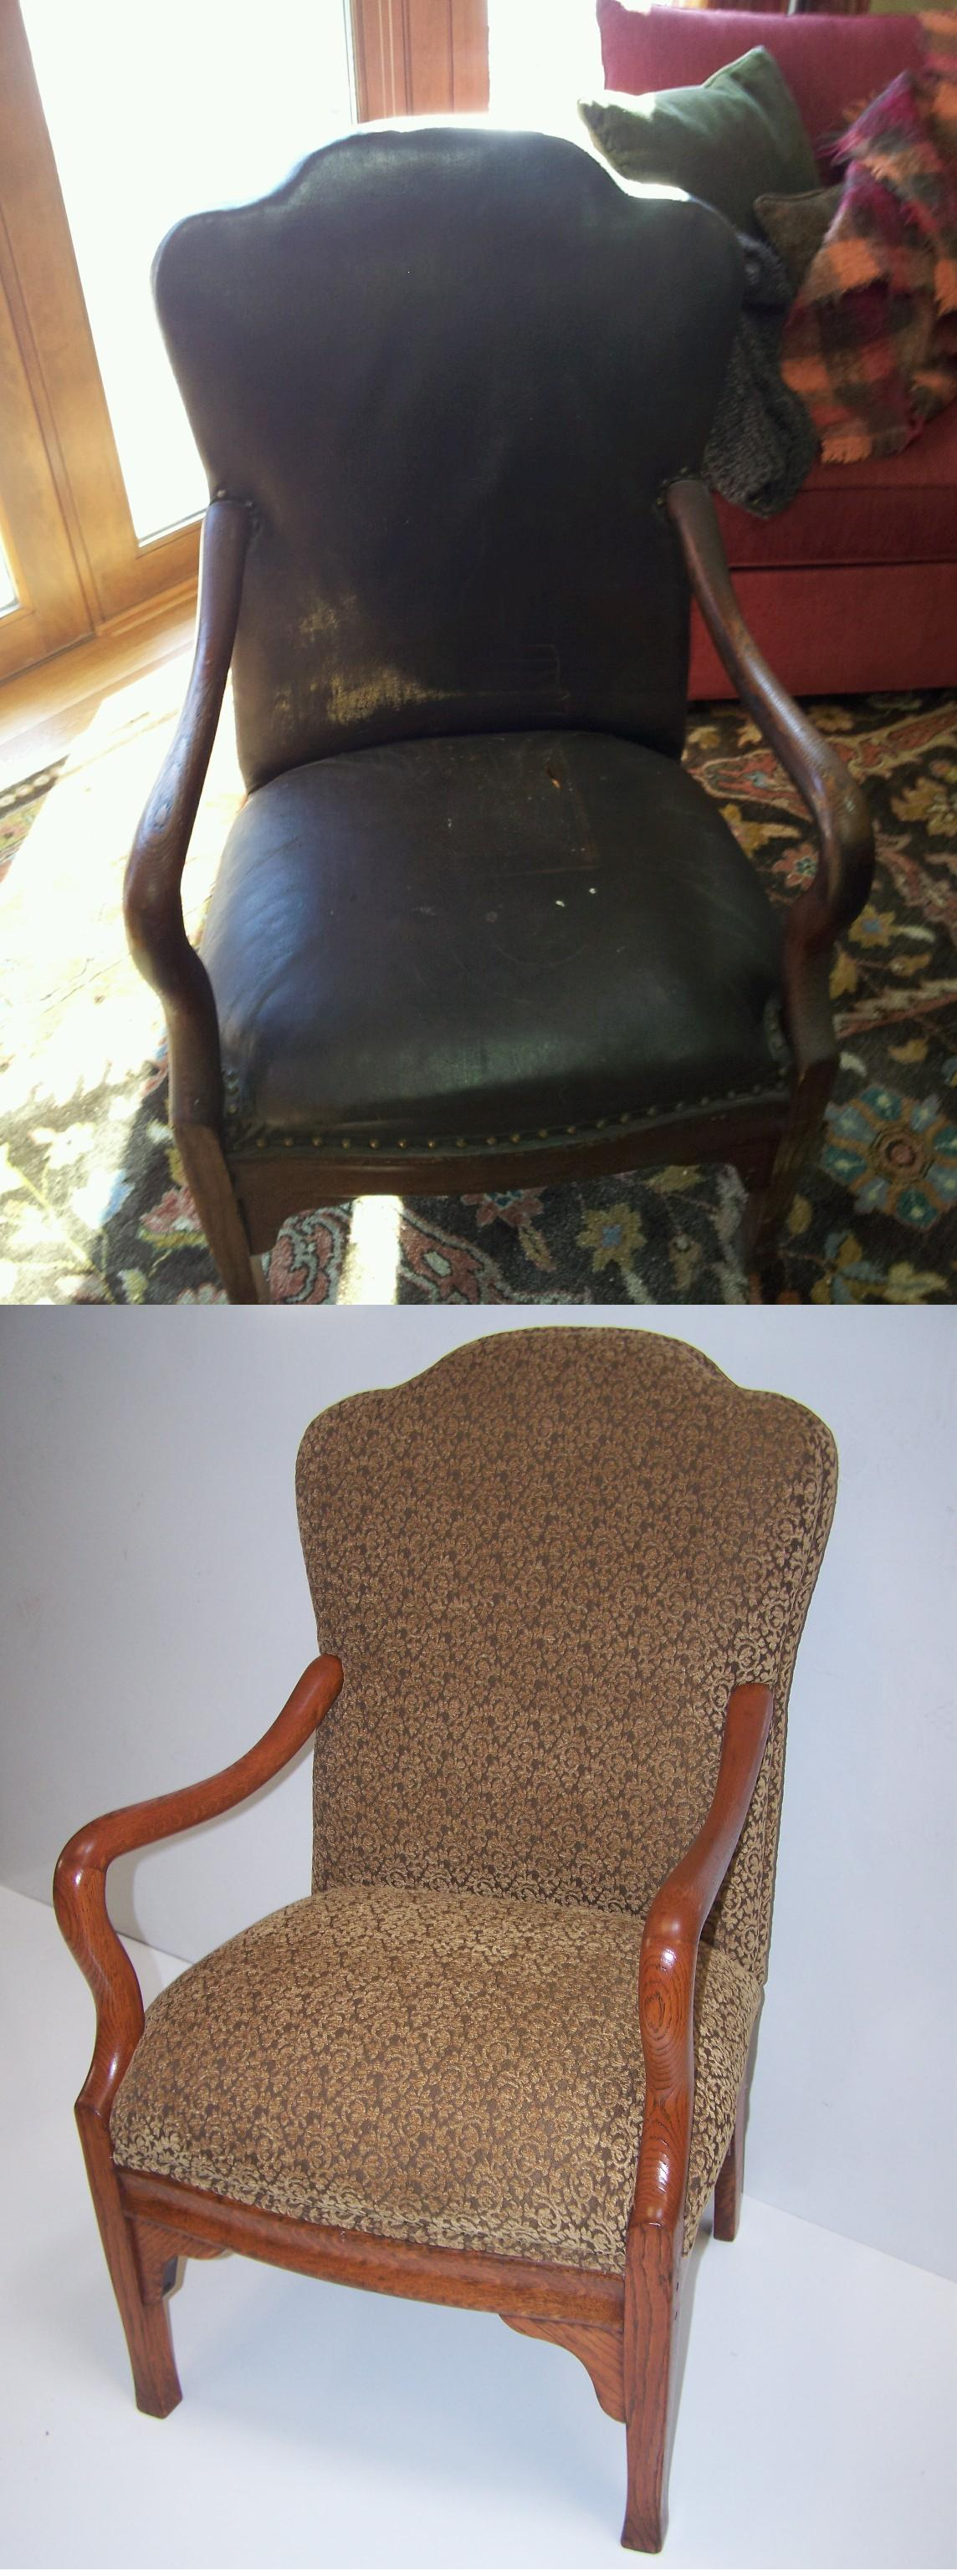 Antique Chair We Restored The Chair To A Custom Color To Fit The Customers Decor And Reupholstered With Fabric Chosen And Provided By The Customer